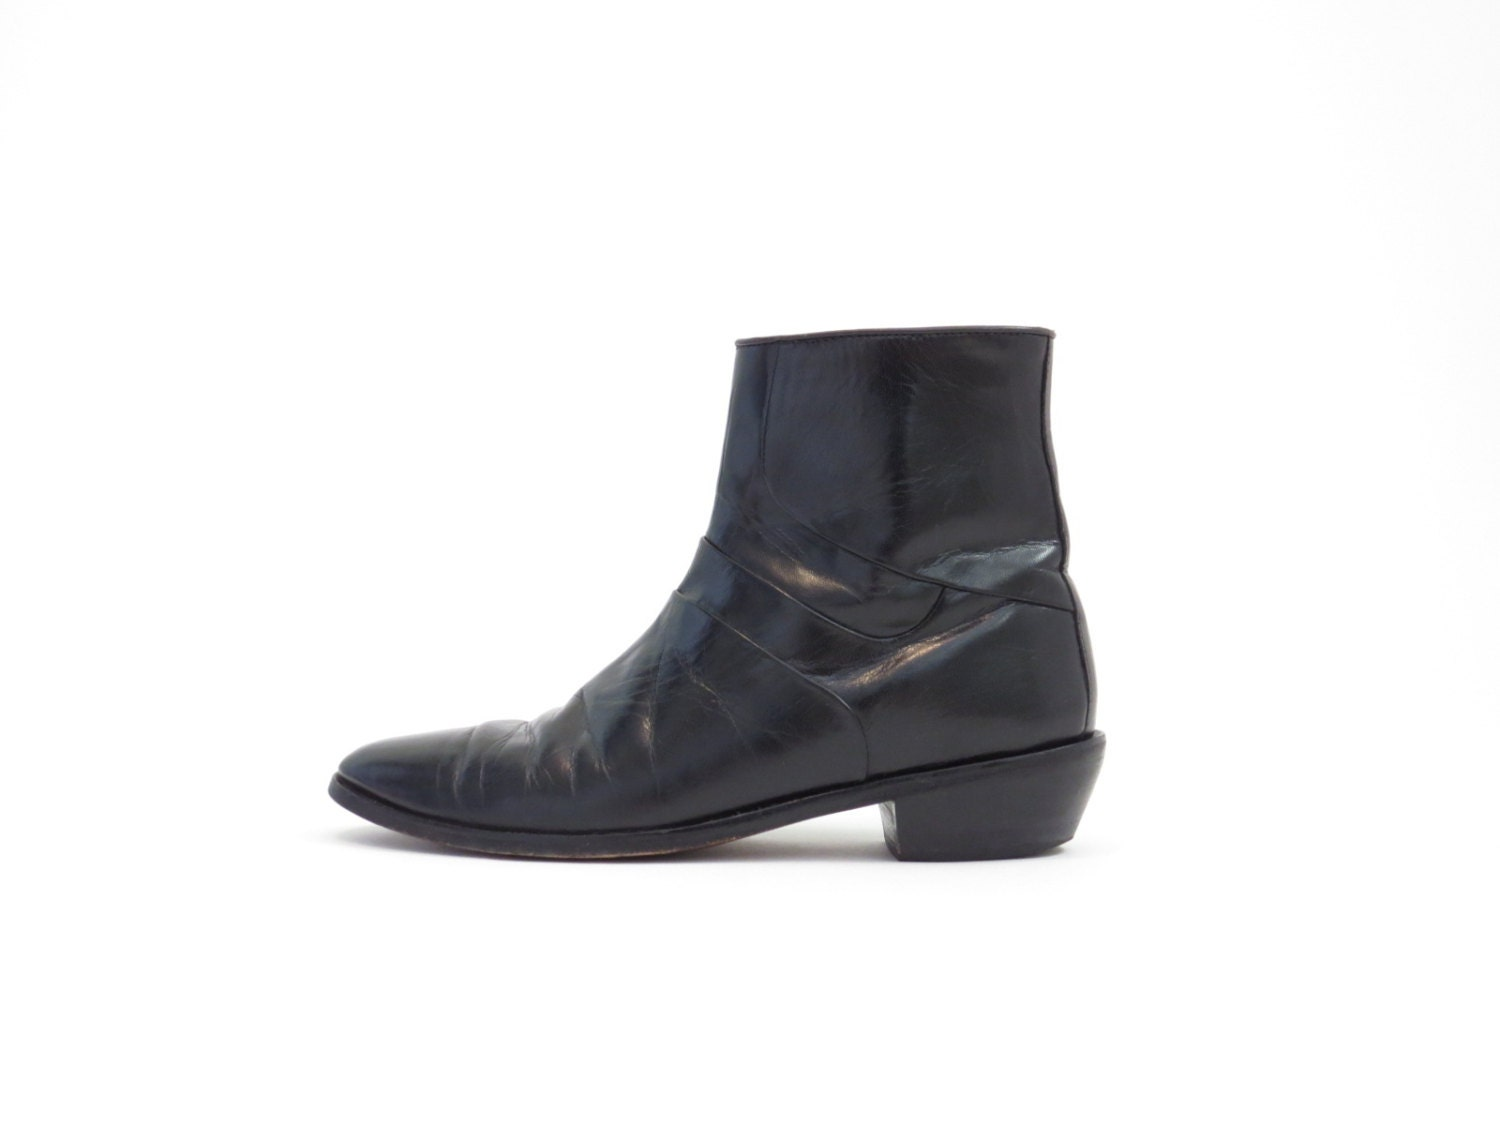 black beatle boots chelsea boots ankle boot real by shoegazes